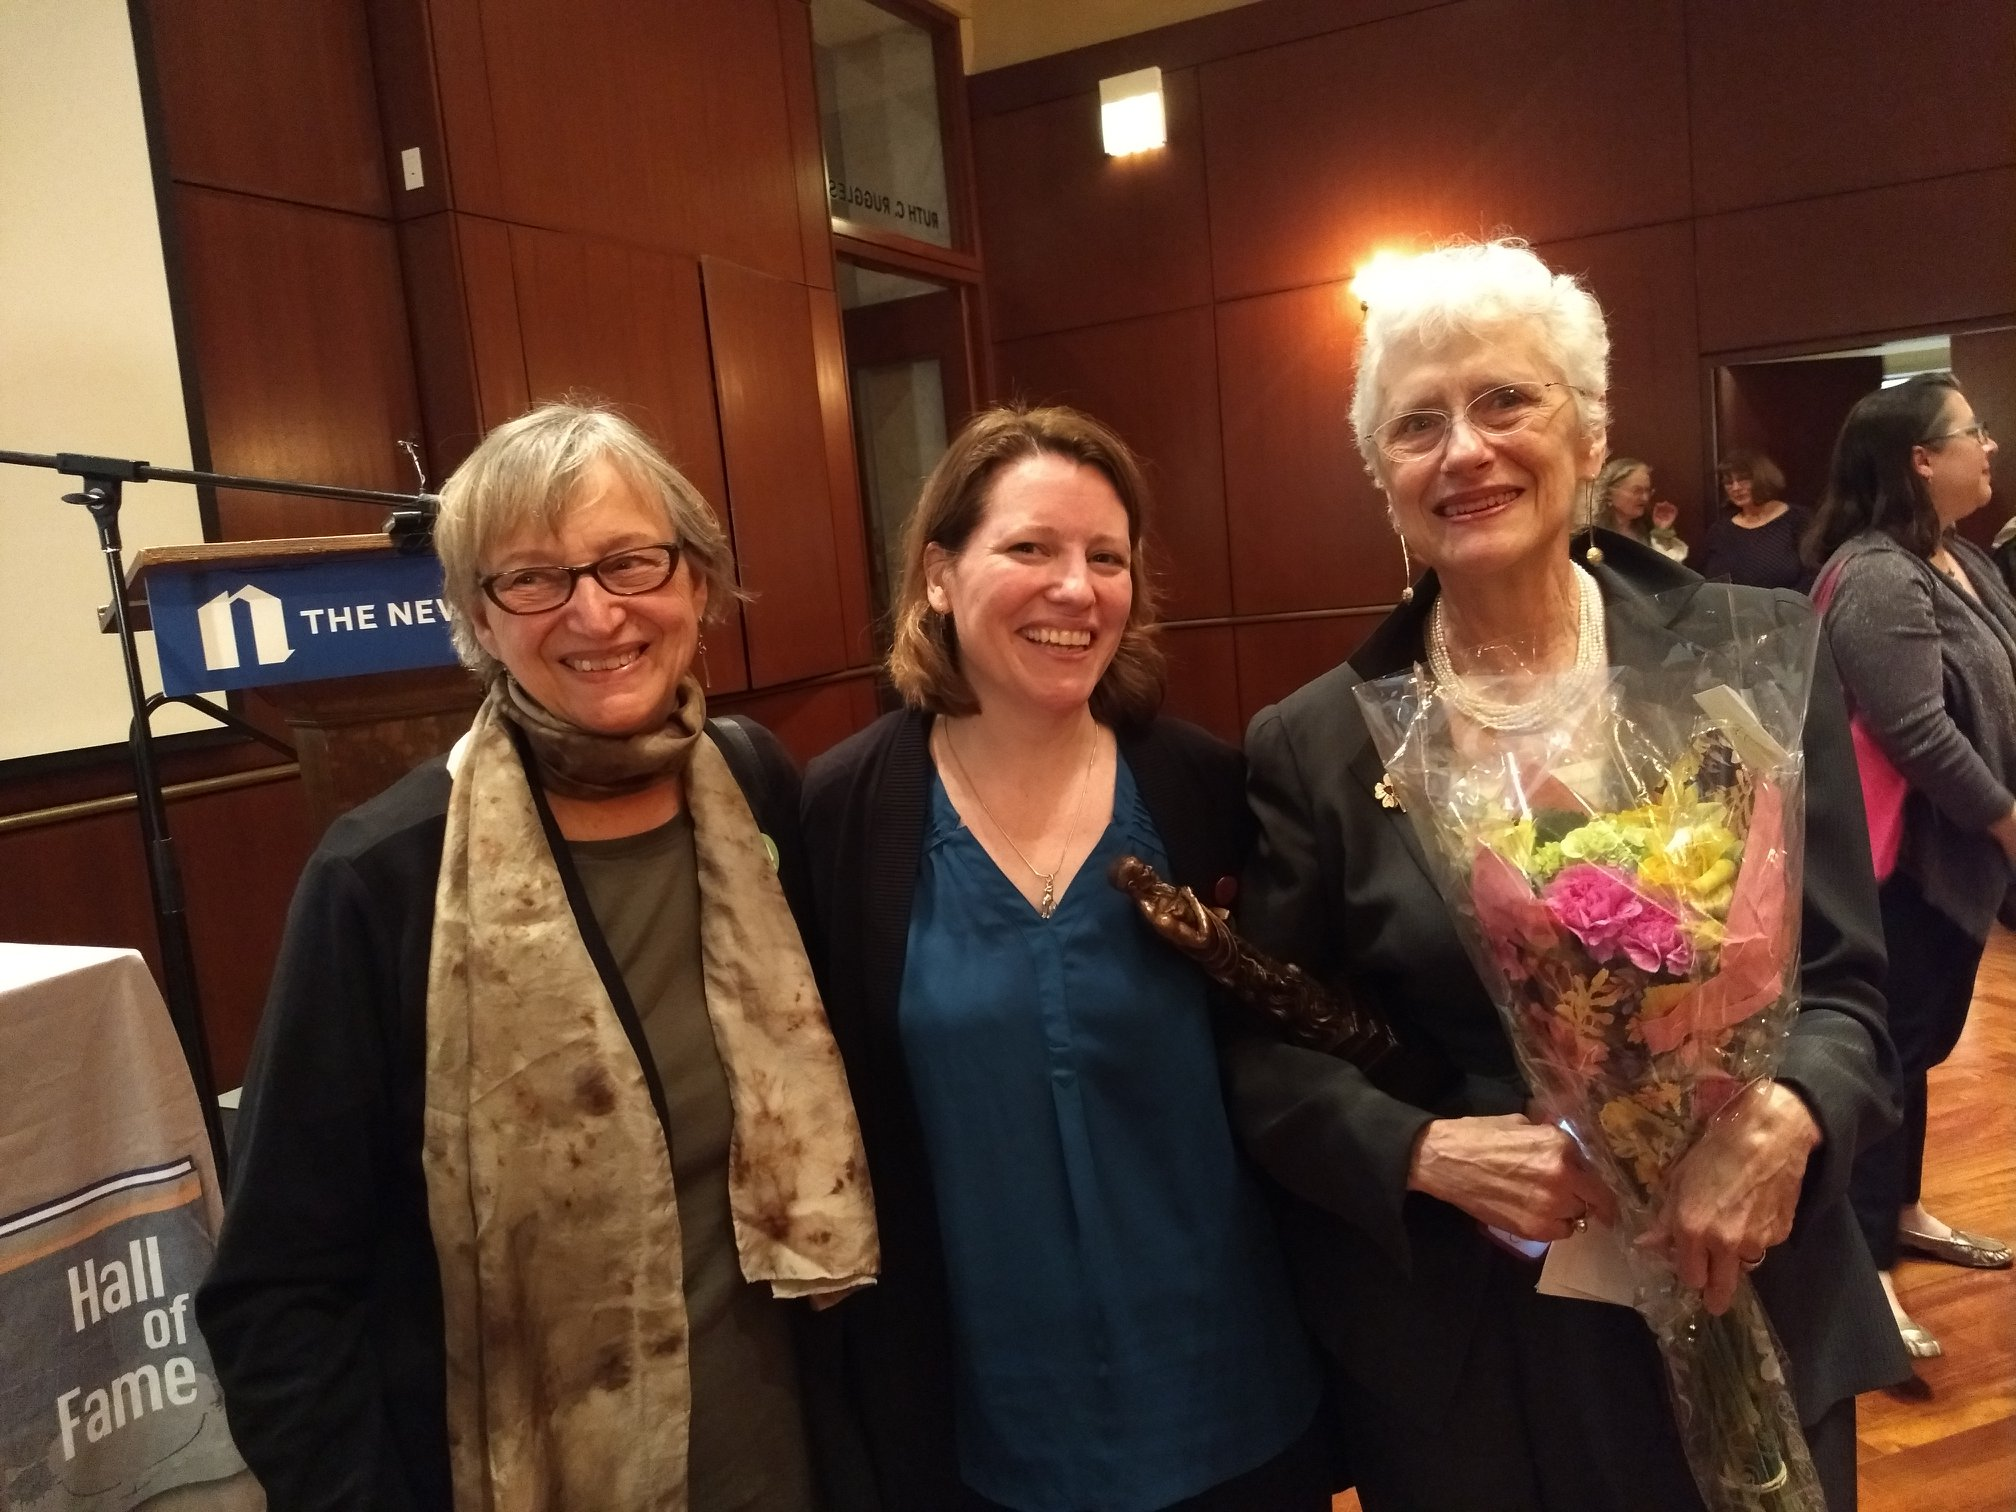 Sisters in Crime salutes founder Sara Paretsky at the Chicago Literary Hall of Fame. With Susanna Calkins. May, 2019.